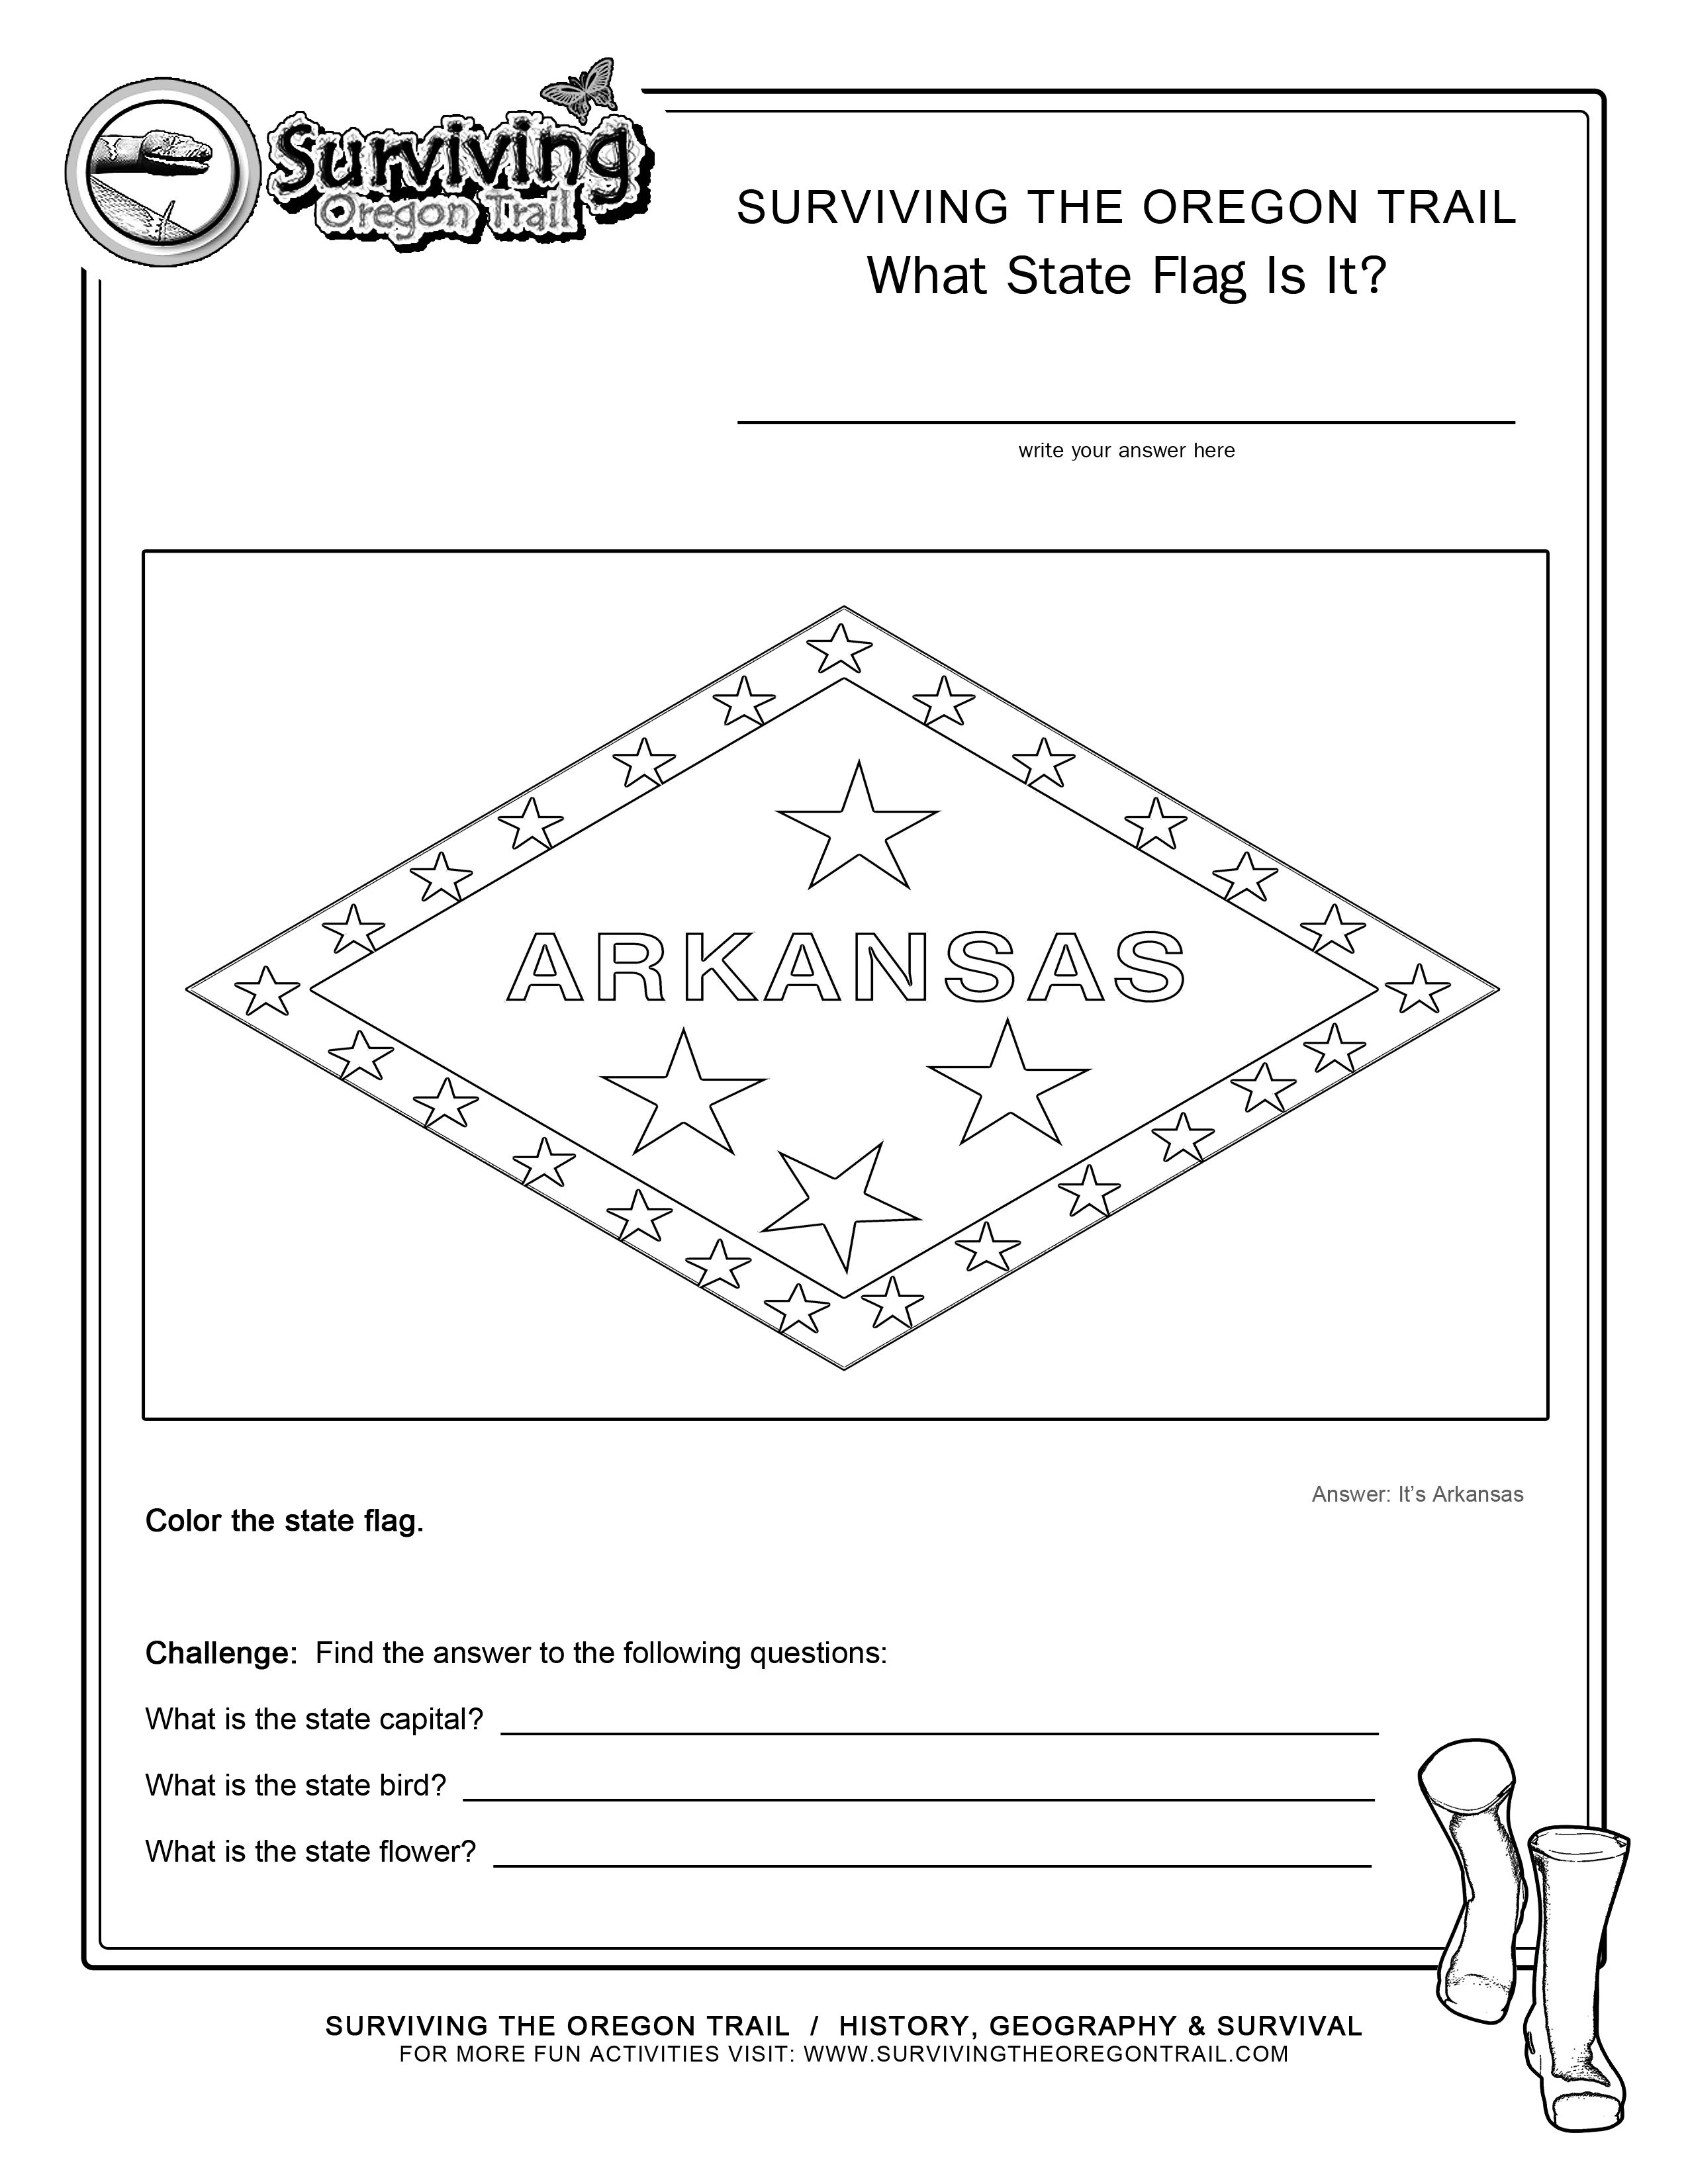 Coloring Page State Flag Arkansas Printable Worksheet – Surviving - Free Printable Arkansas History Worksheets